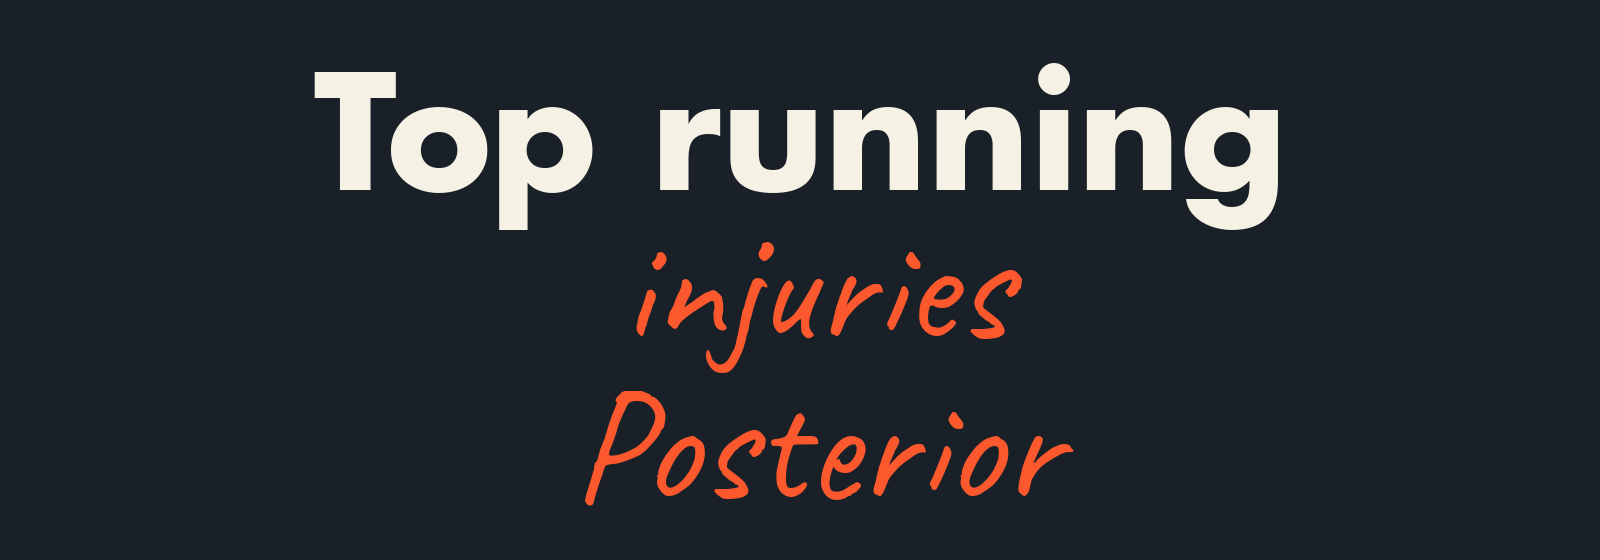 Posterior running injuries